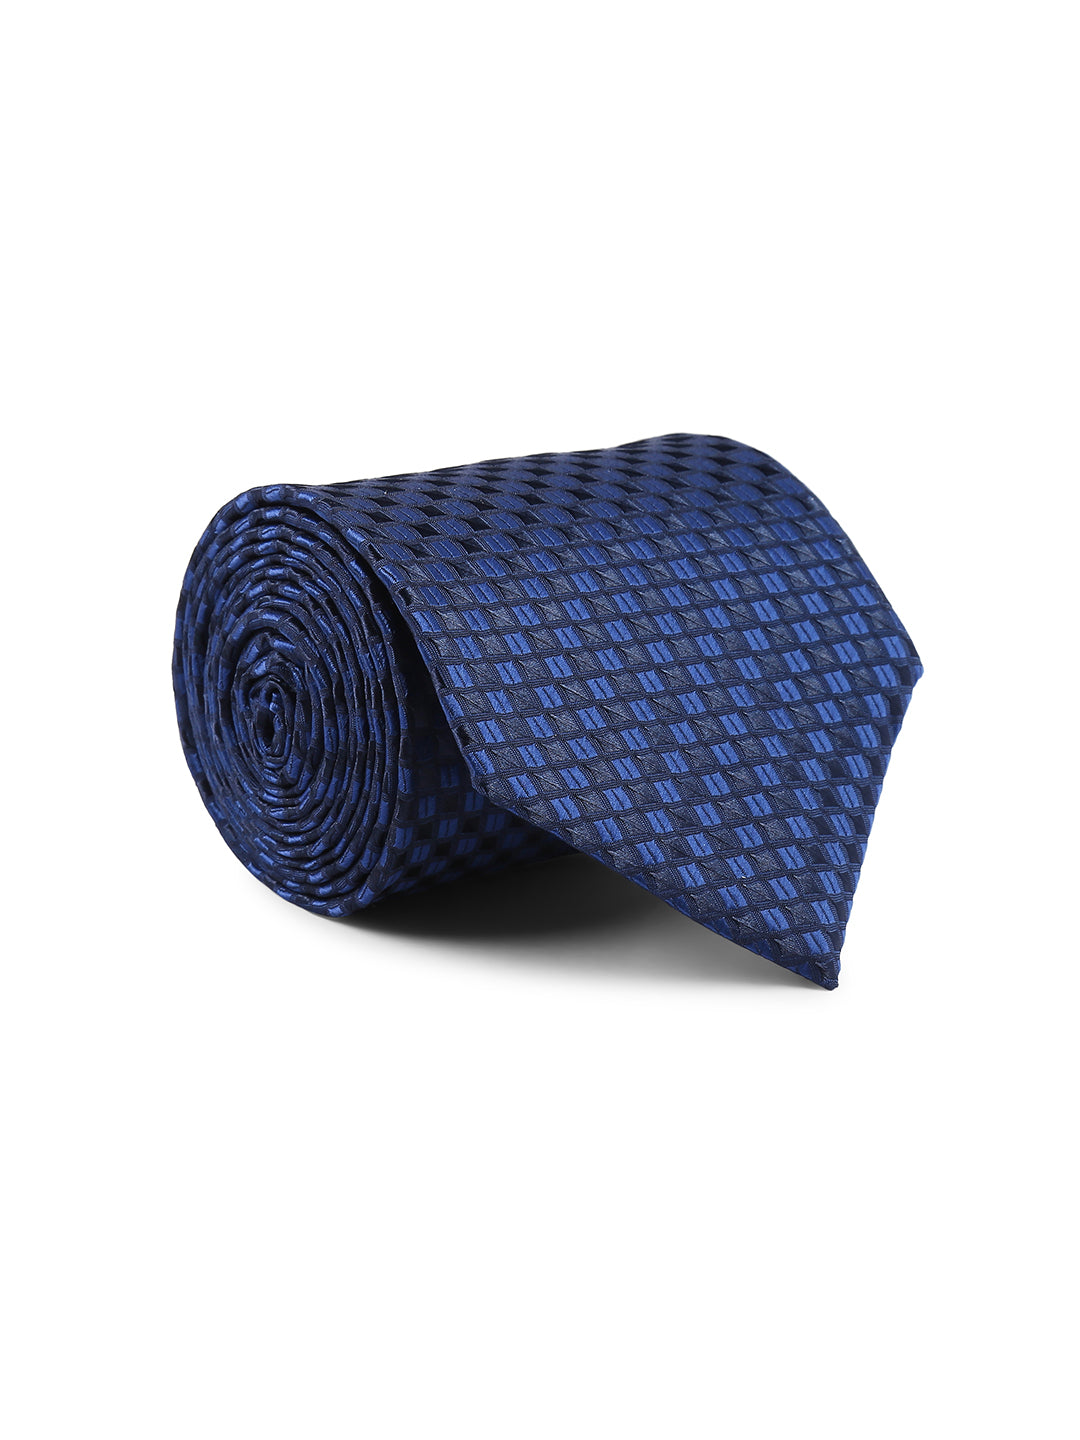 Zido Tie for Men TJQ254